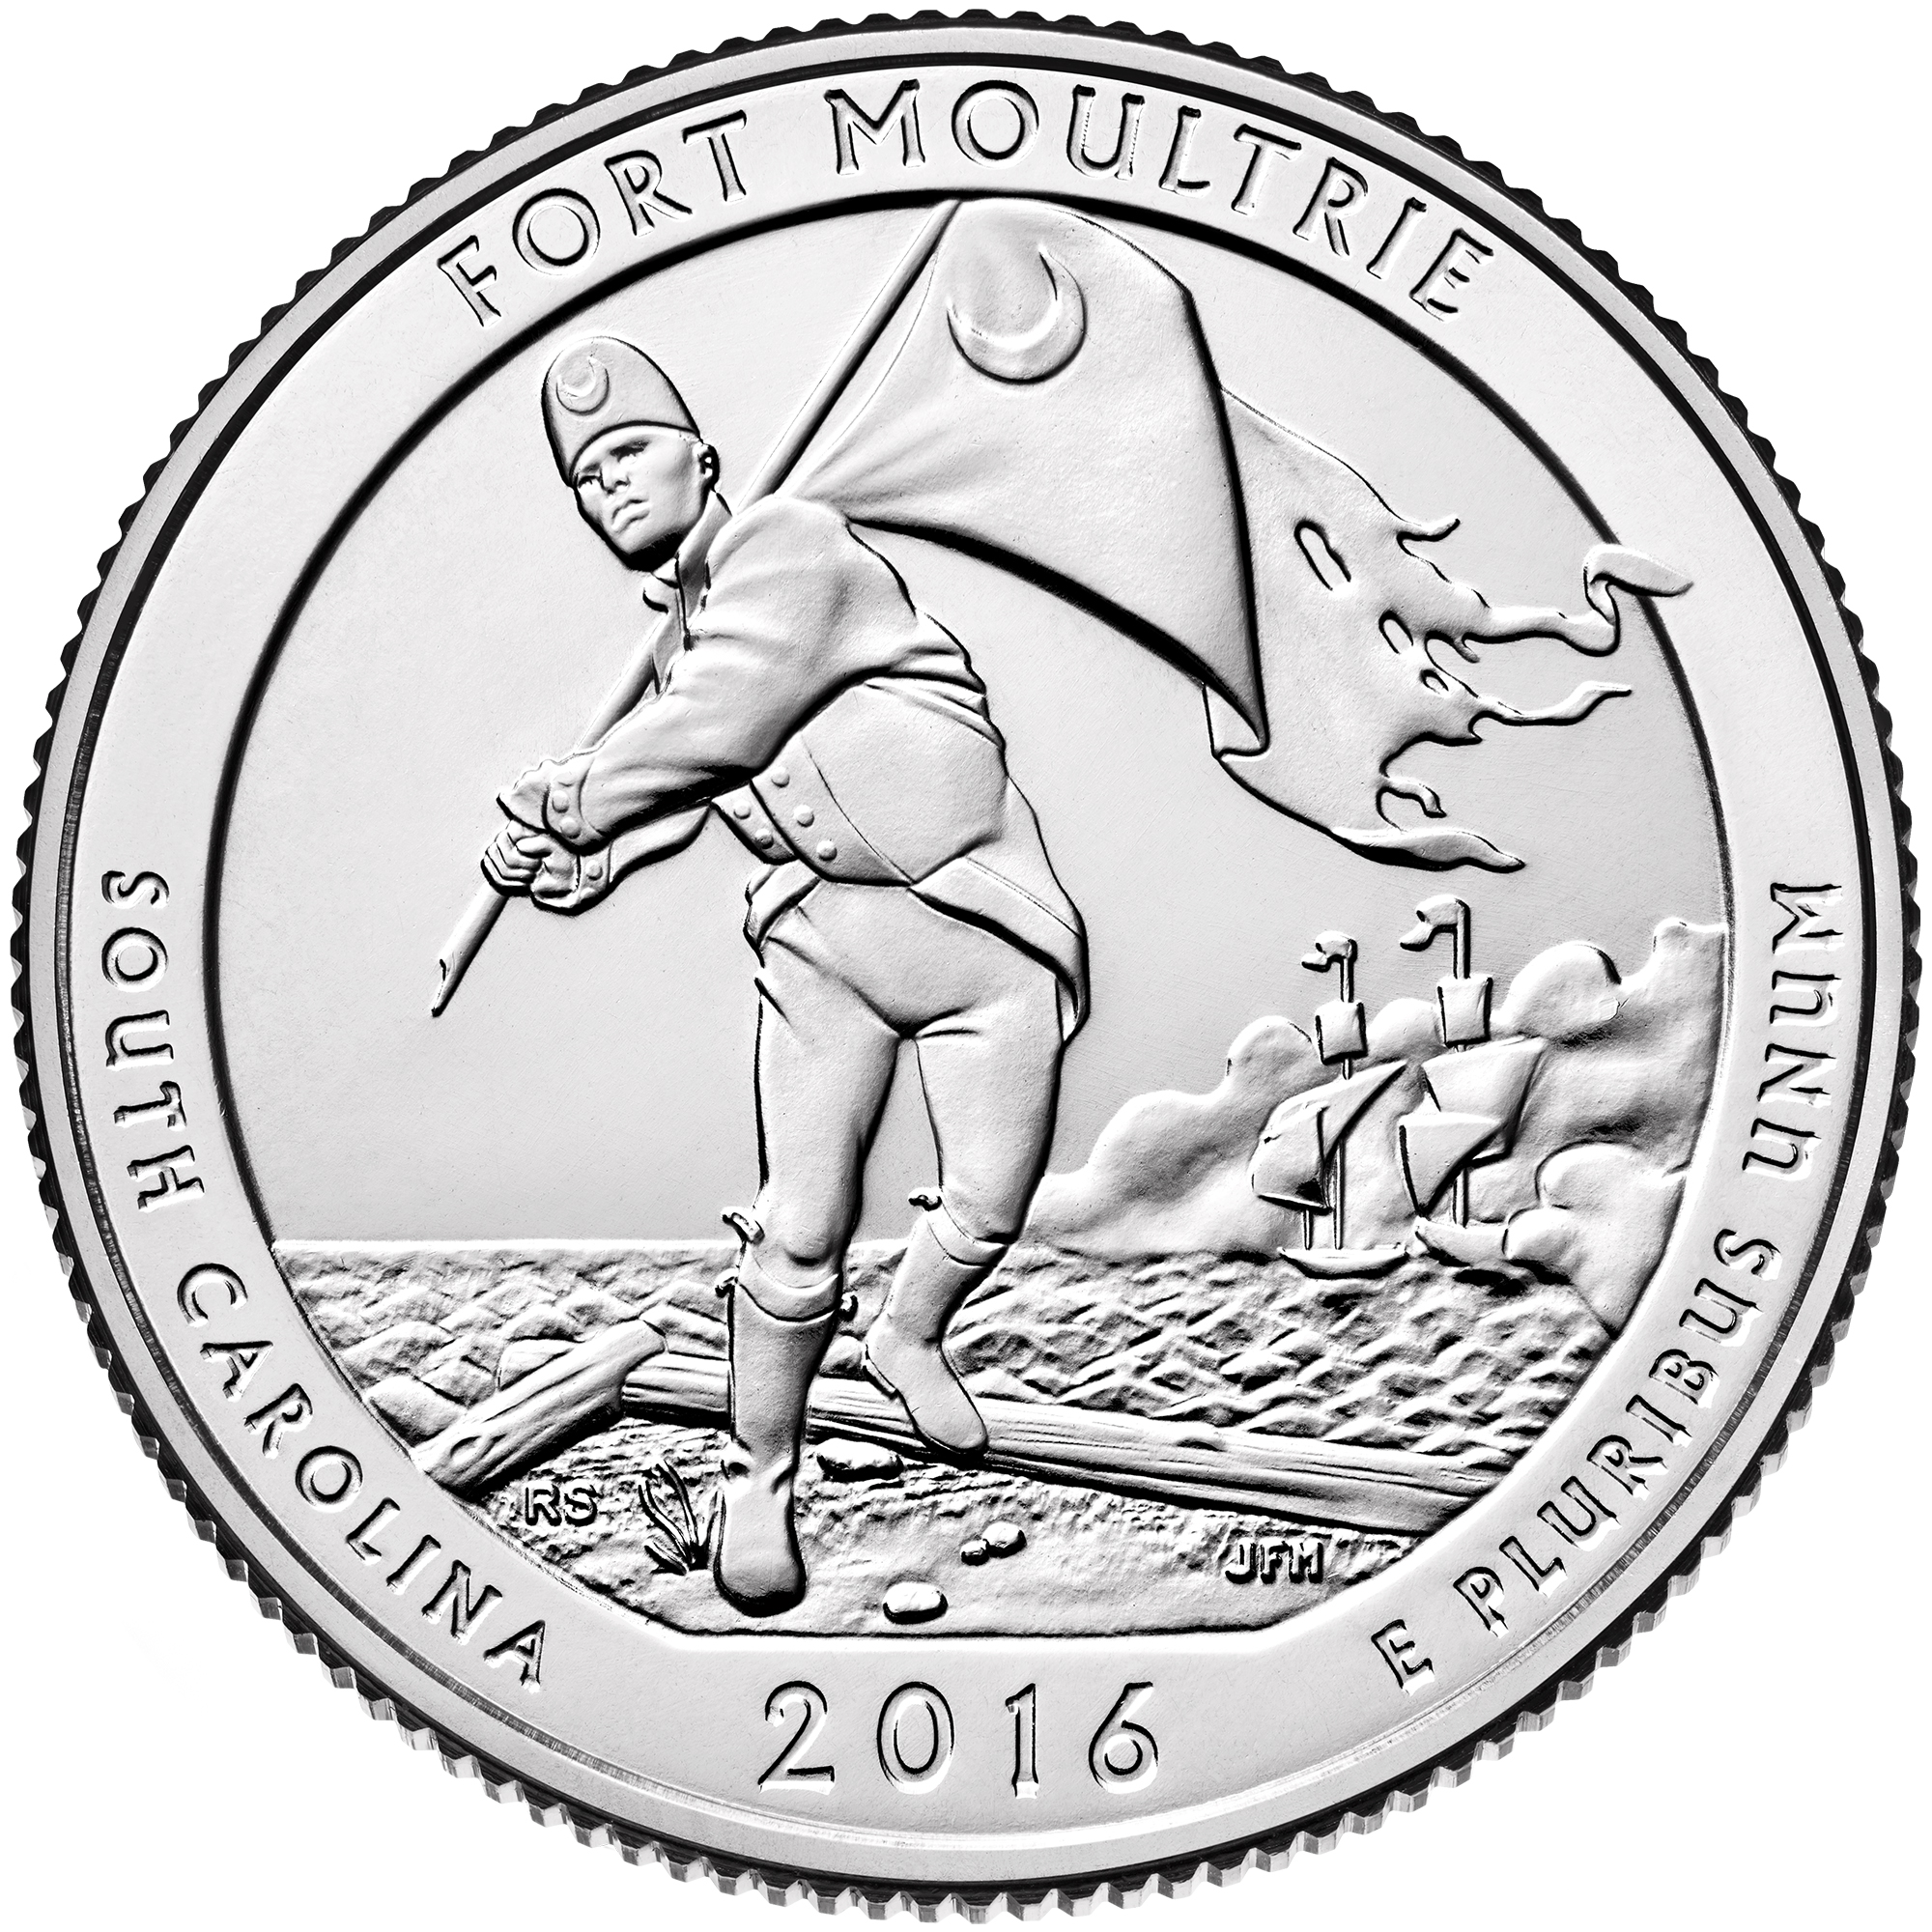 2016 America The Beautiful Quarters Coin Fort Moultrie South Carolina Uncirculated Reverse